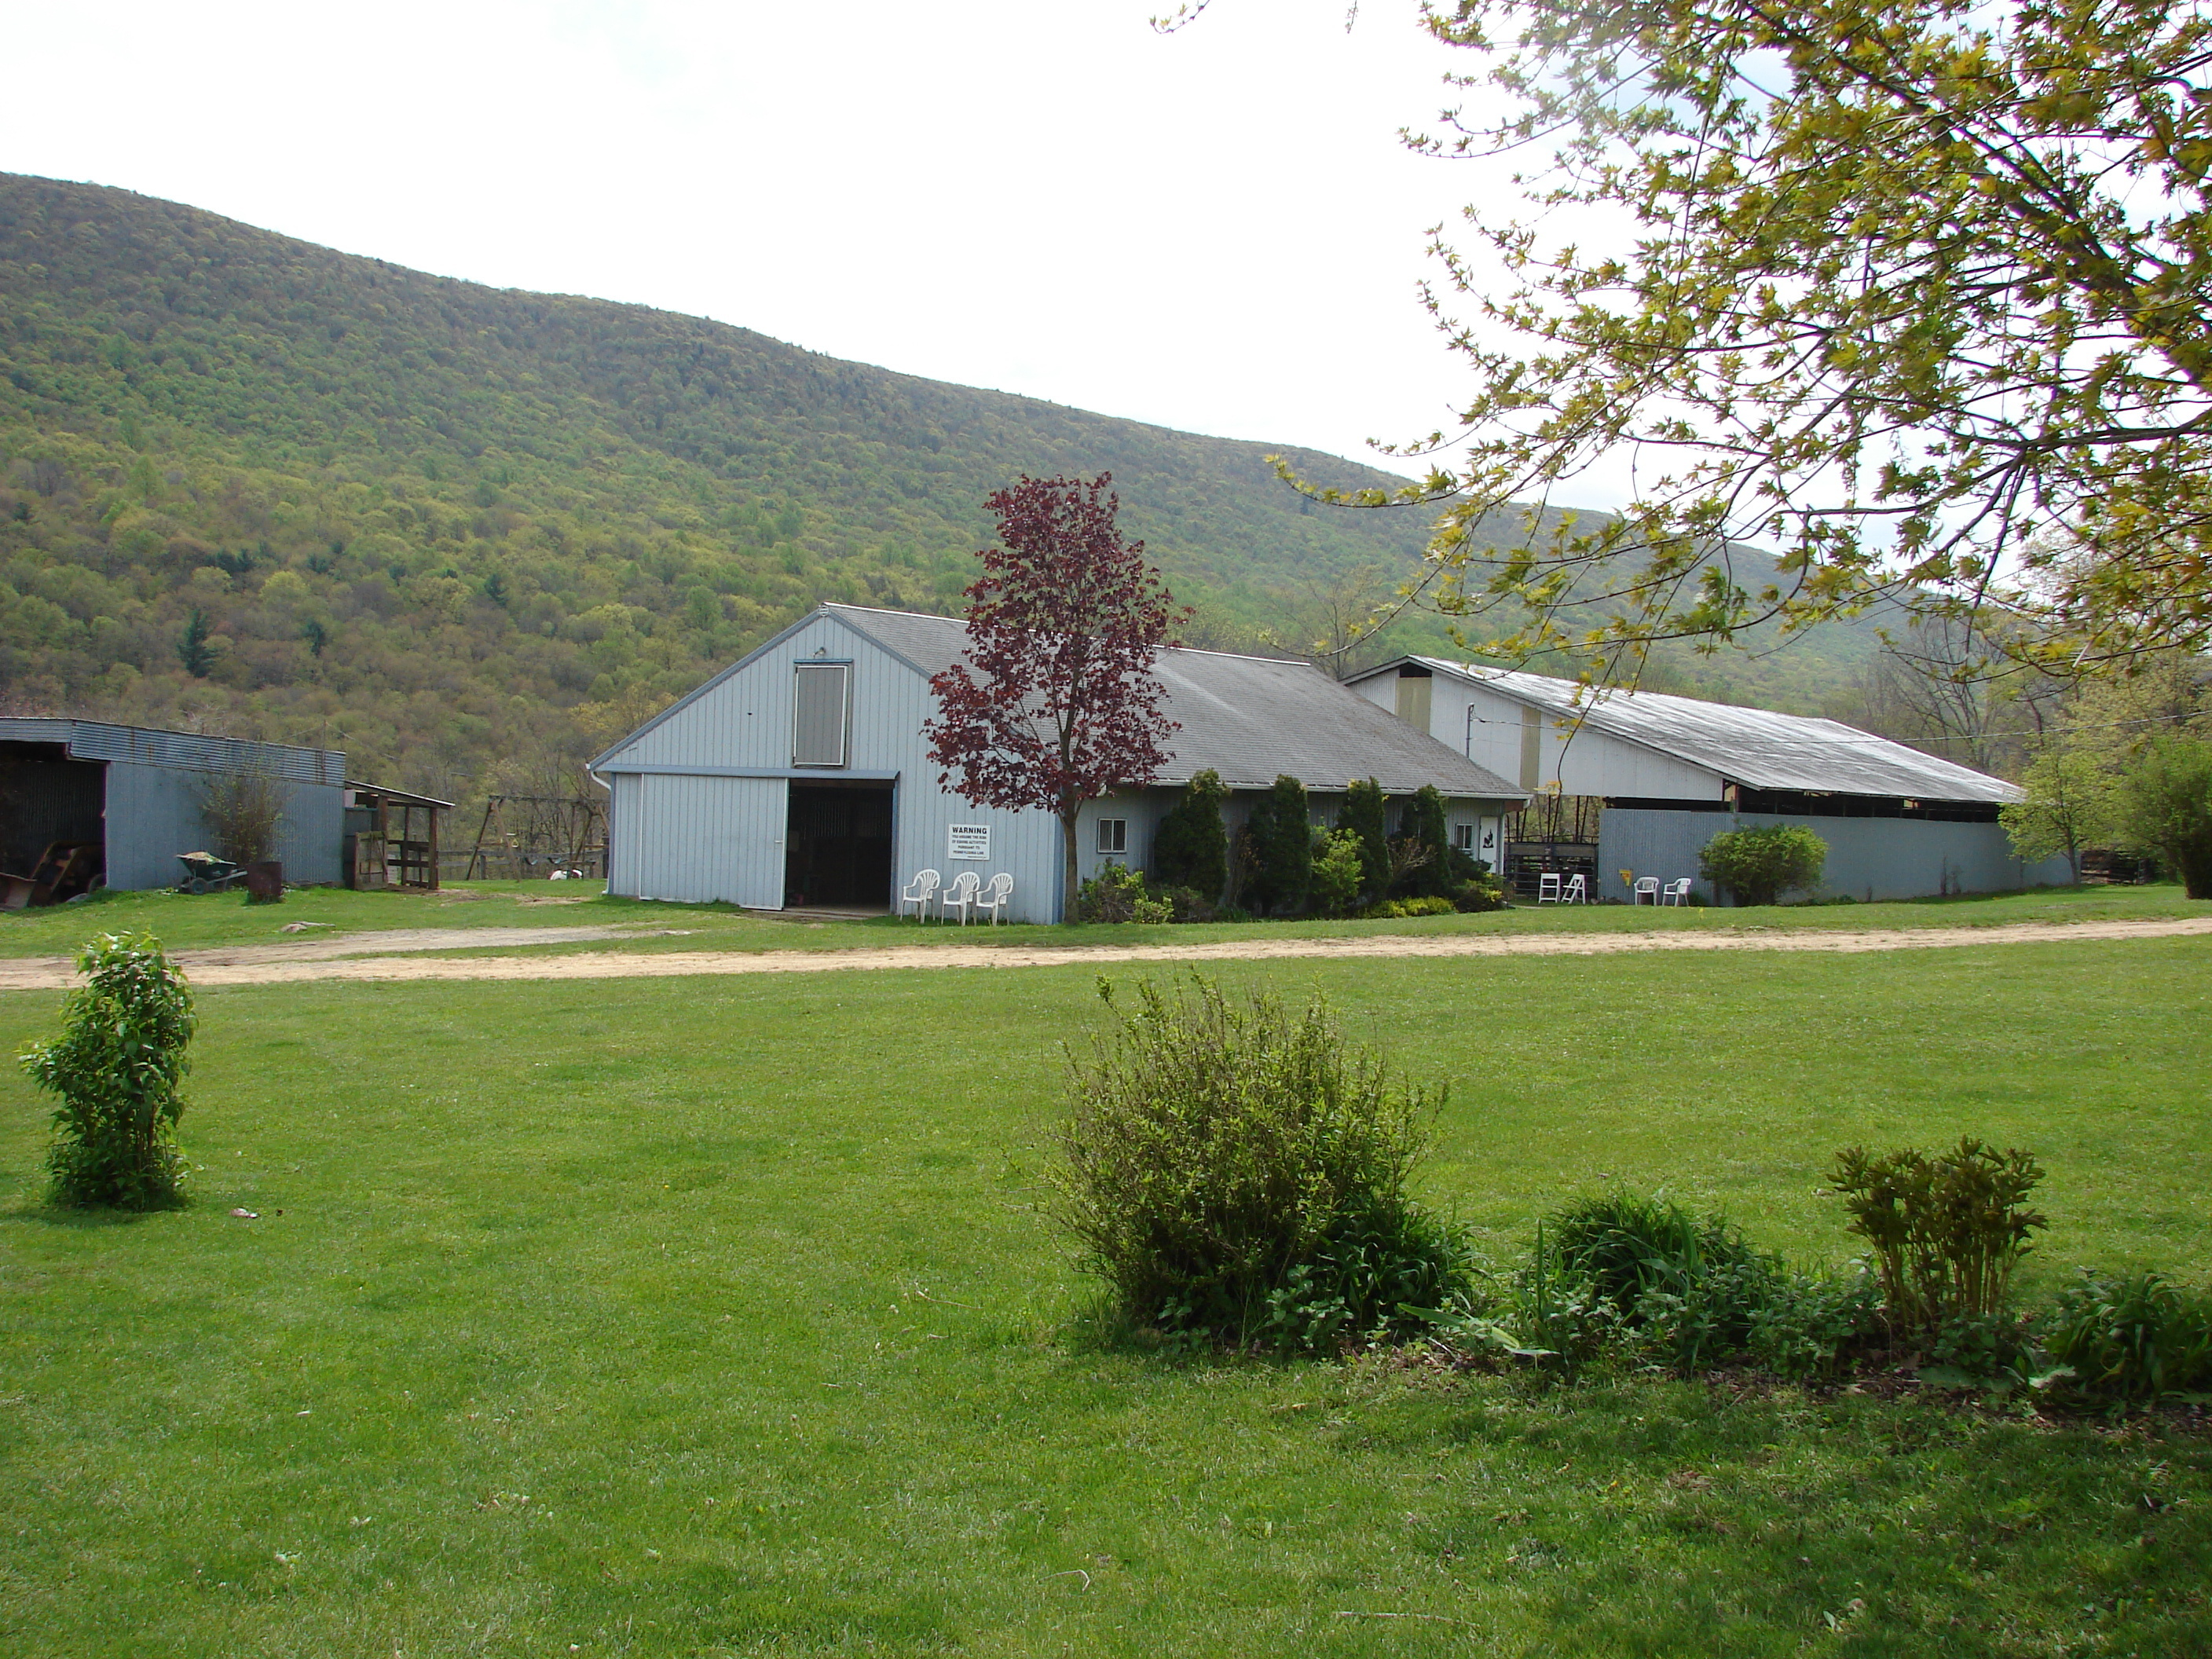 22 Acre Horse Farm For Sale In Kunkletown Pa